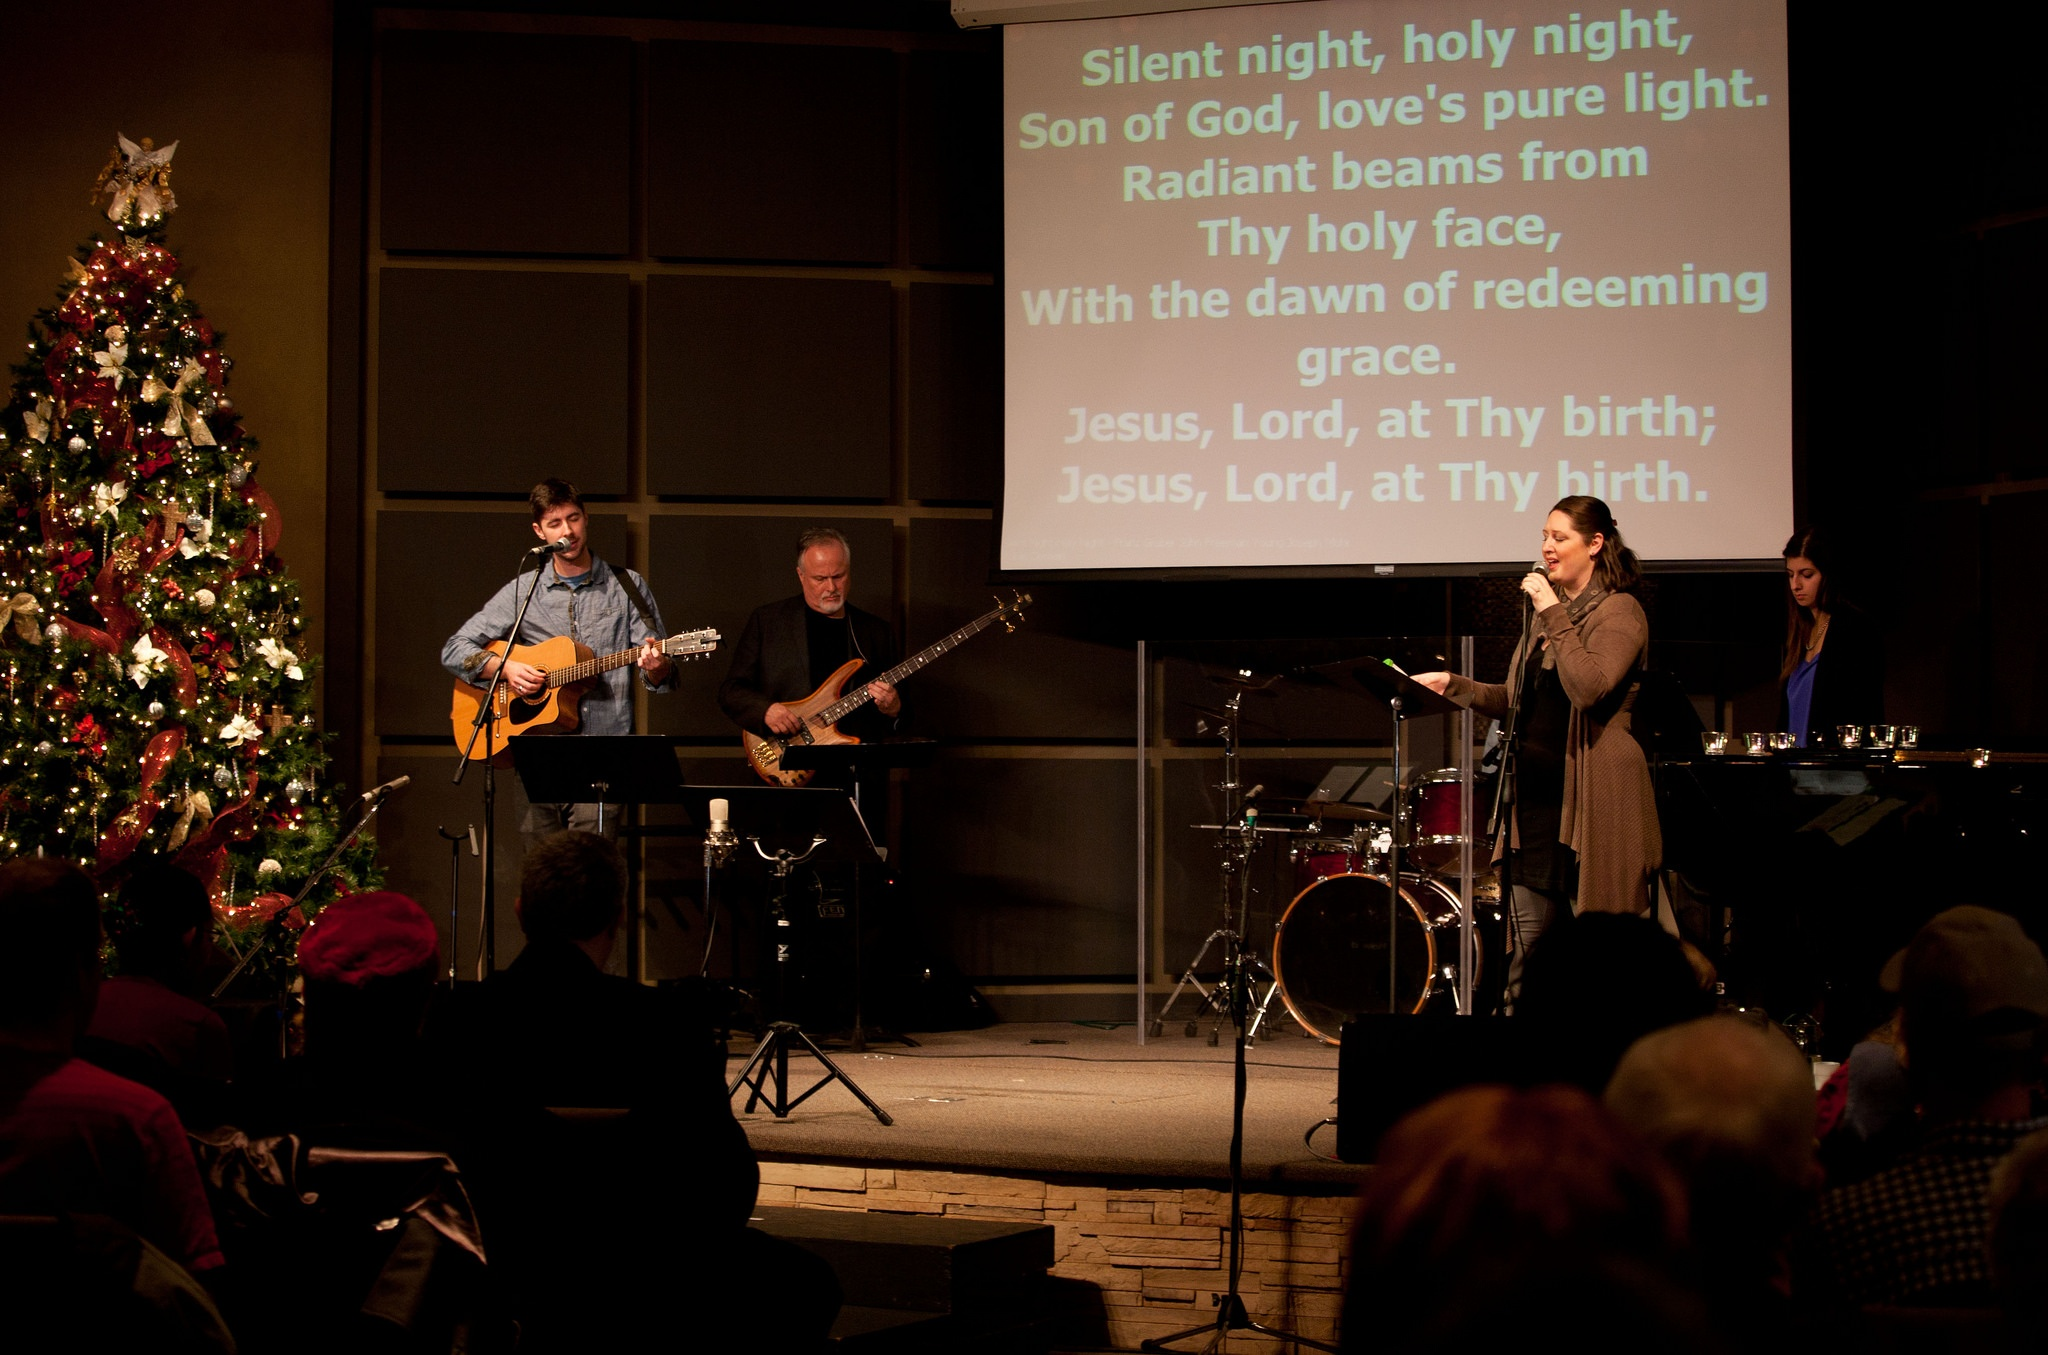 A church uses technology to project lyrics on stage